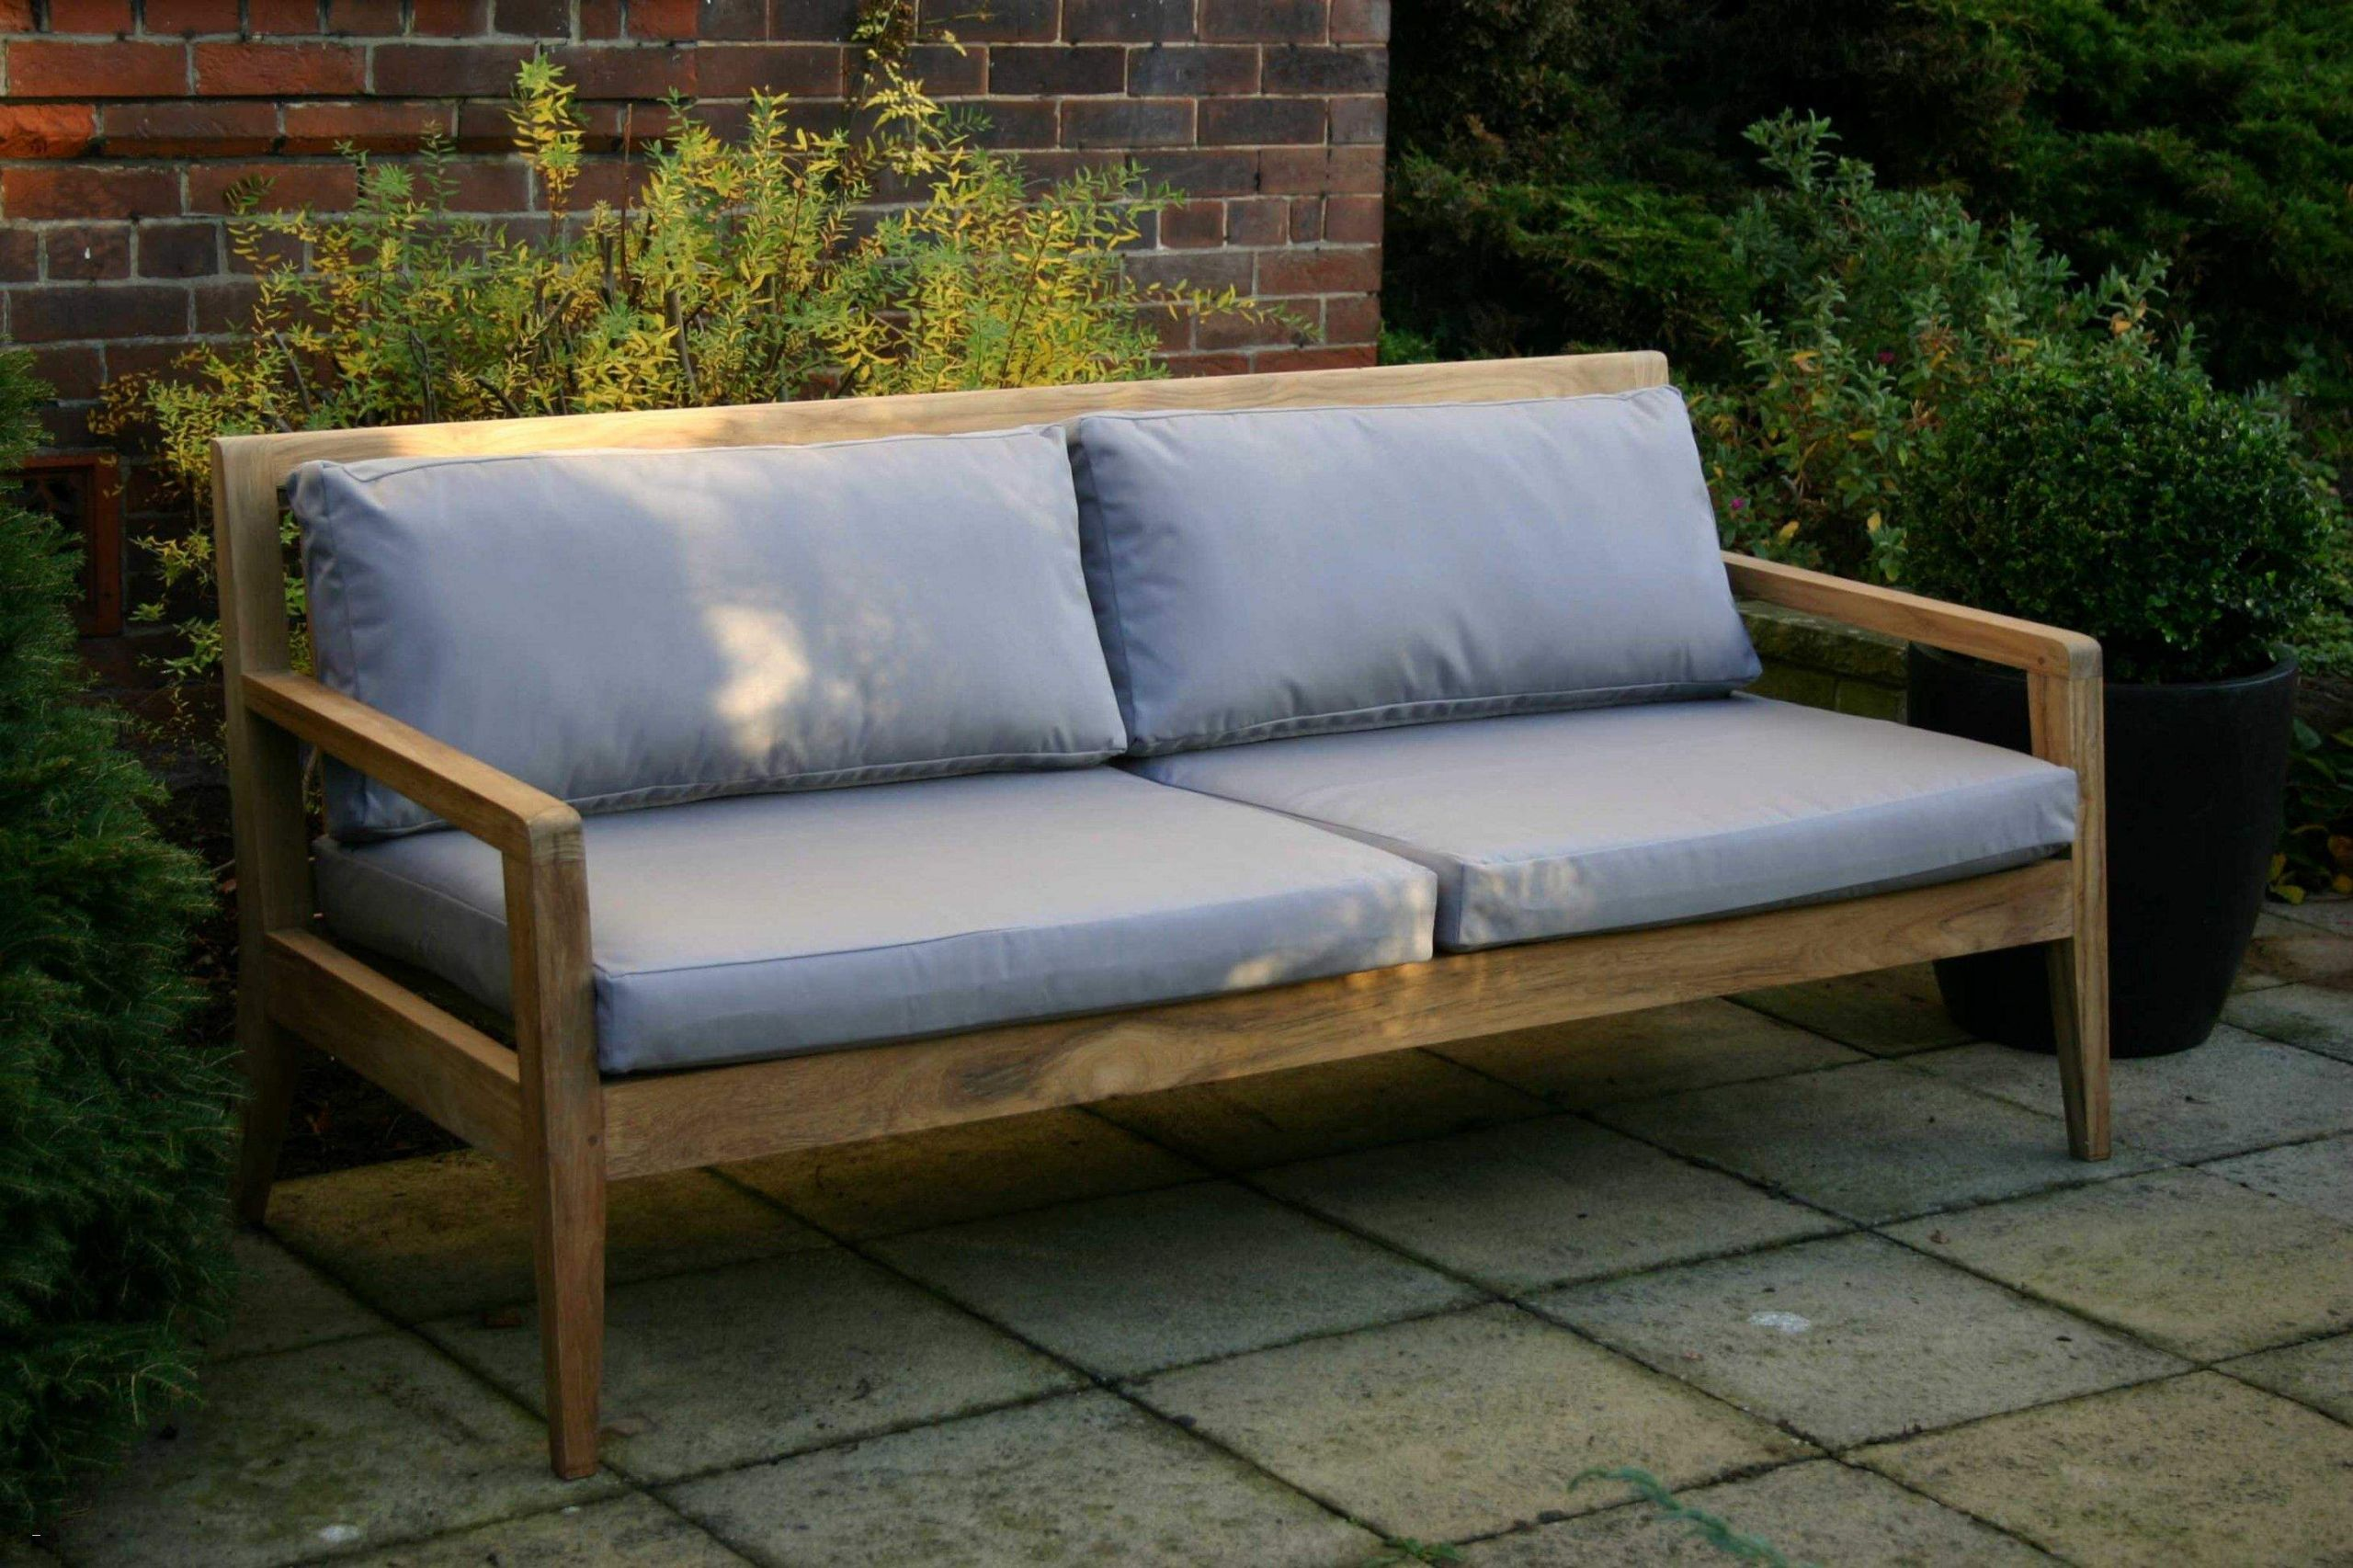 teak stuehle garten outdoor teak furniture awesome oben outdoor sofa aus teak garten elegant